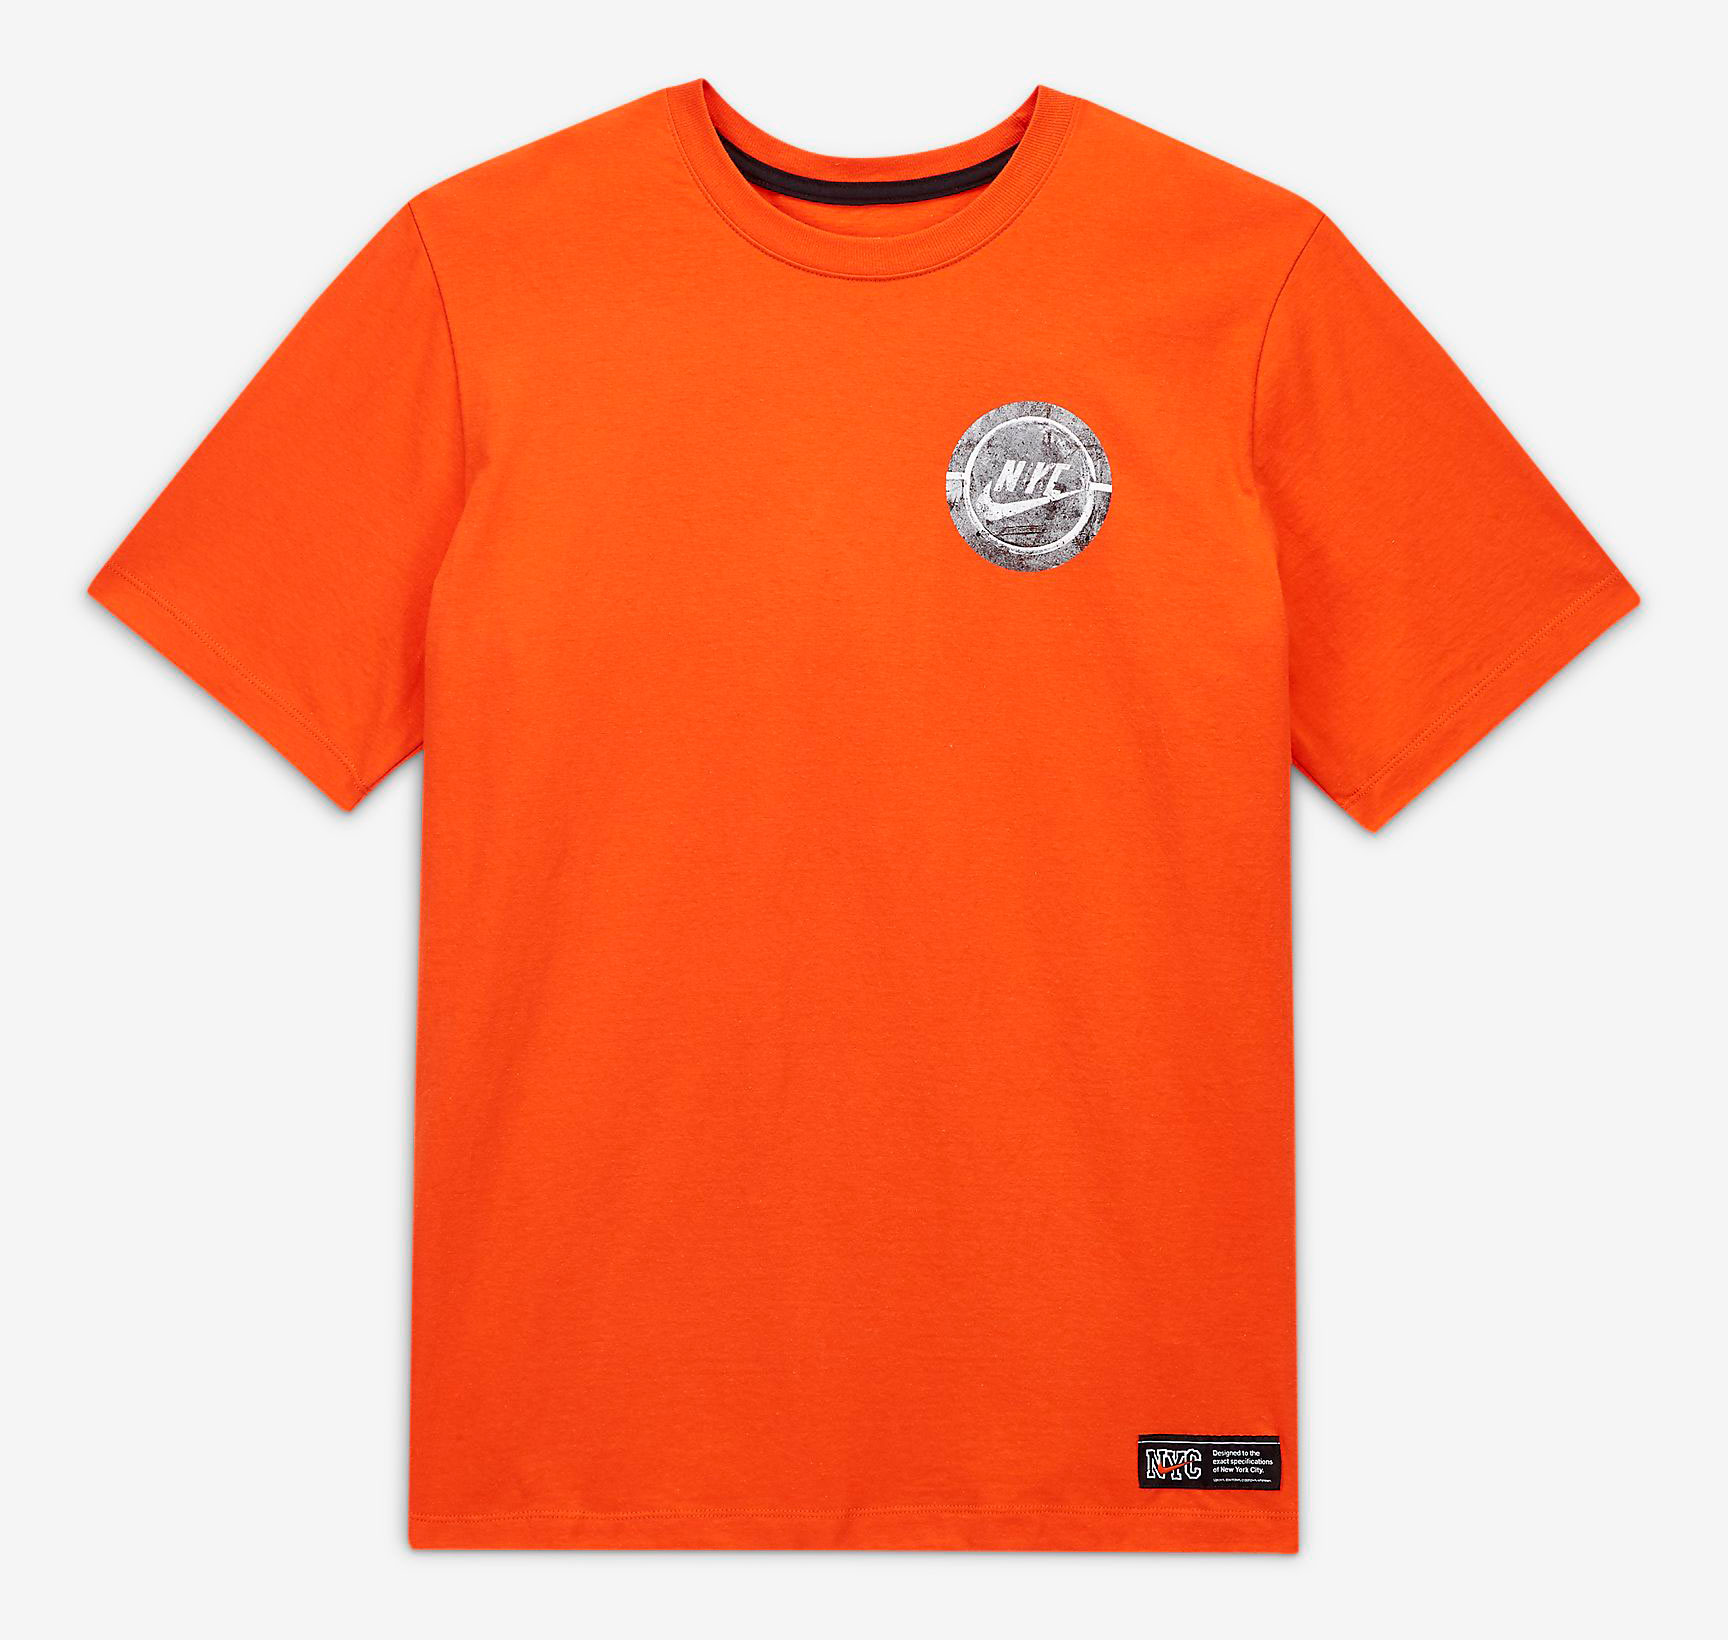 nike-nyc-orange-shirt-1